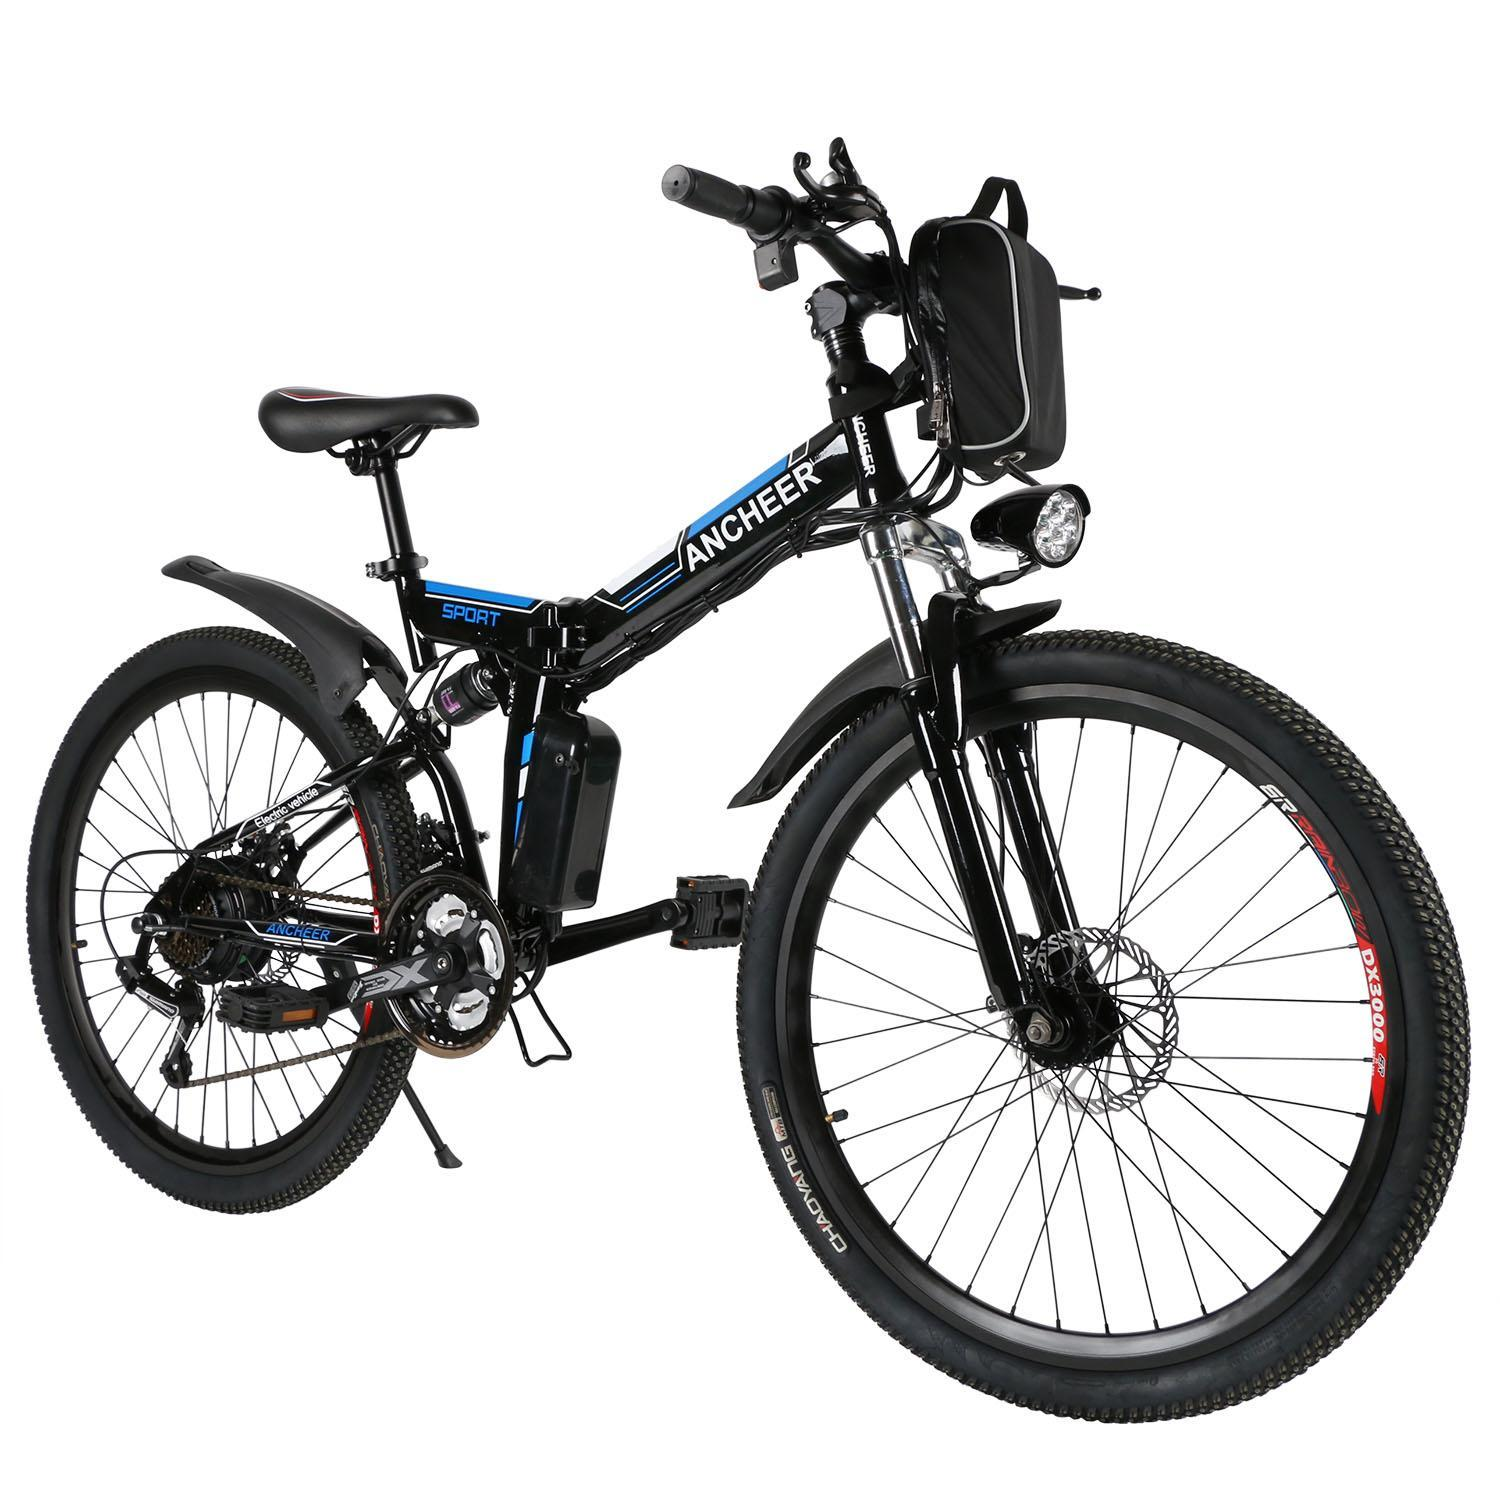 "ANCHEER 26"" 36V Folding Electric Mountain Bike With Lithium-Ion Battery Ebike Shimano Bicycle HDPML"